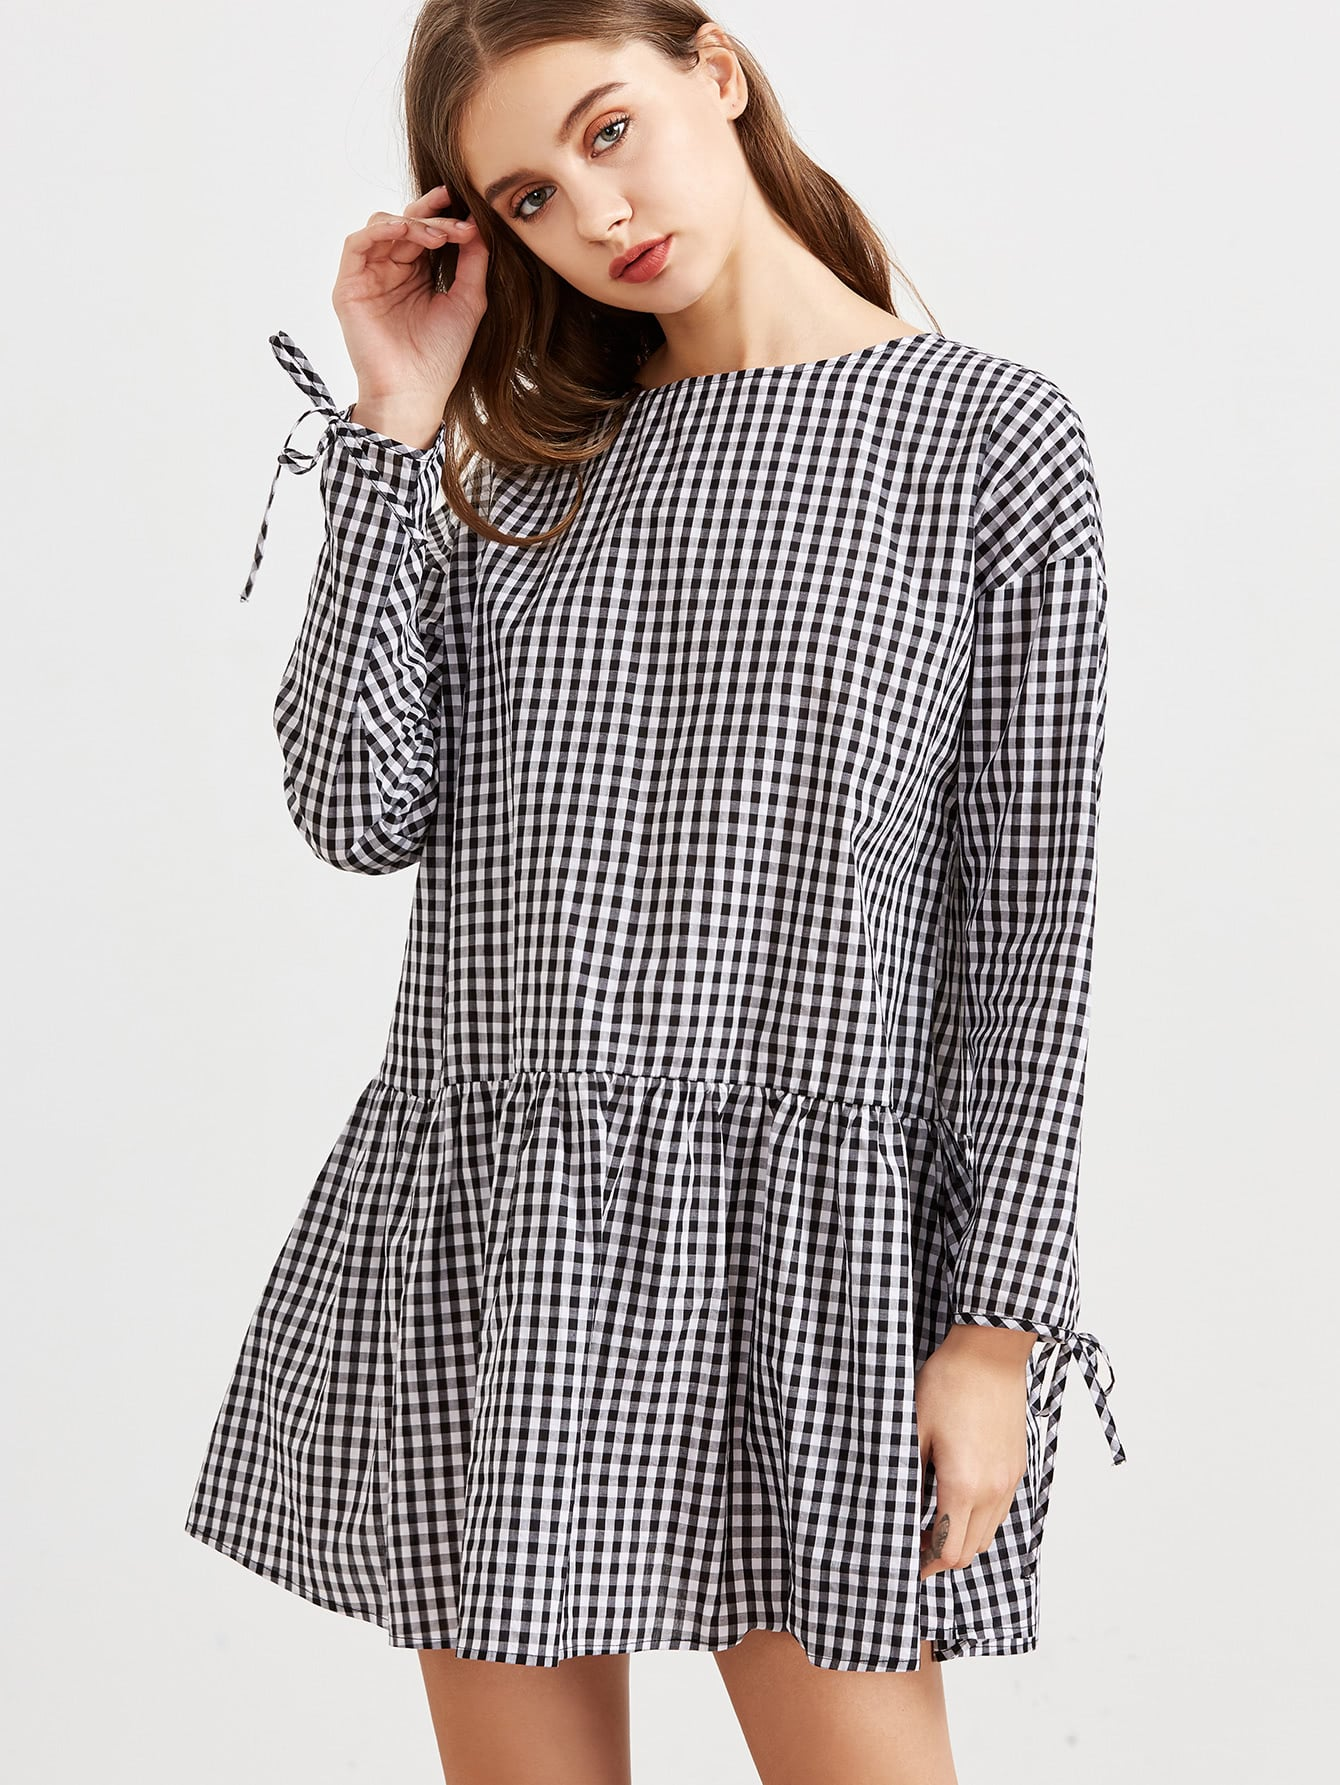 c6d68a3c63e Black And White Checkered Tie Sleeve Ruffle Hem Dress | ROMWE